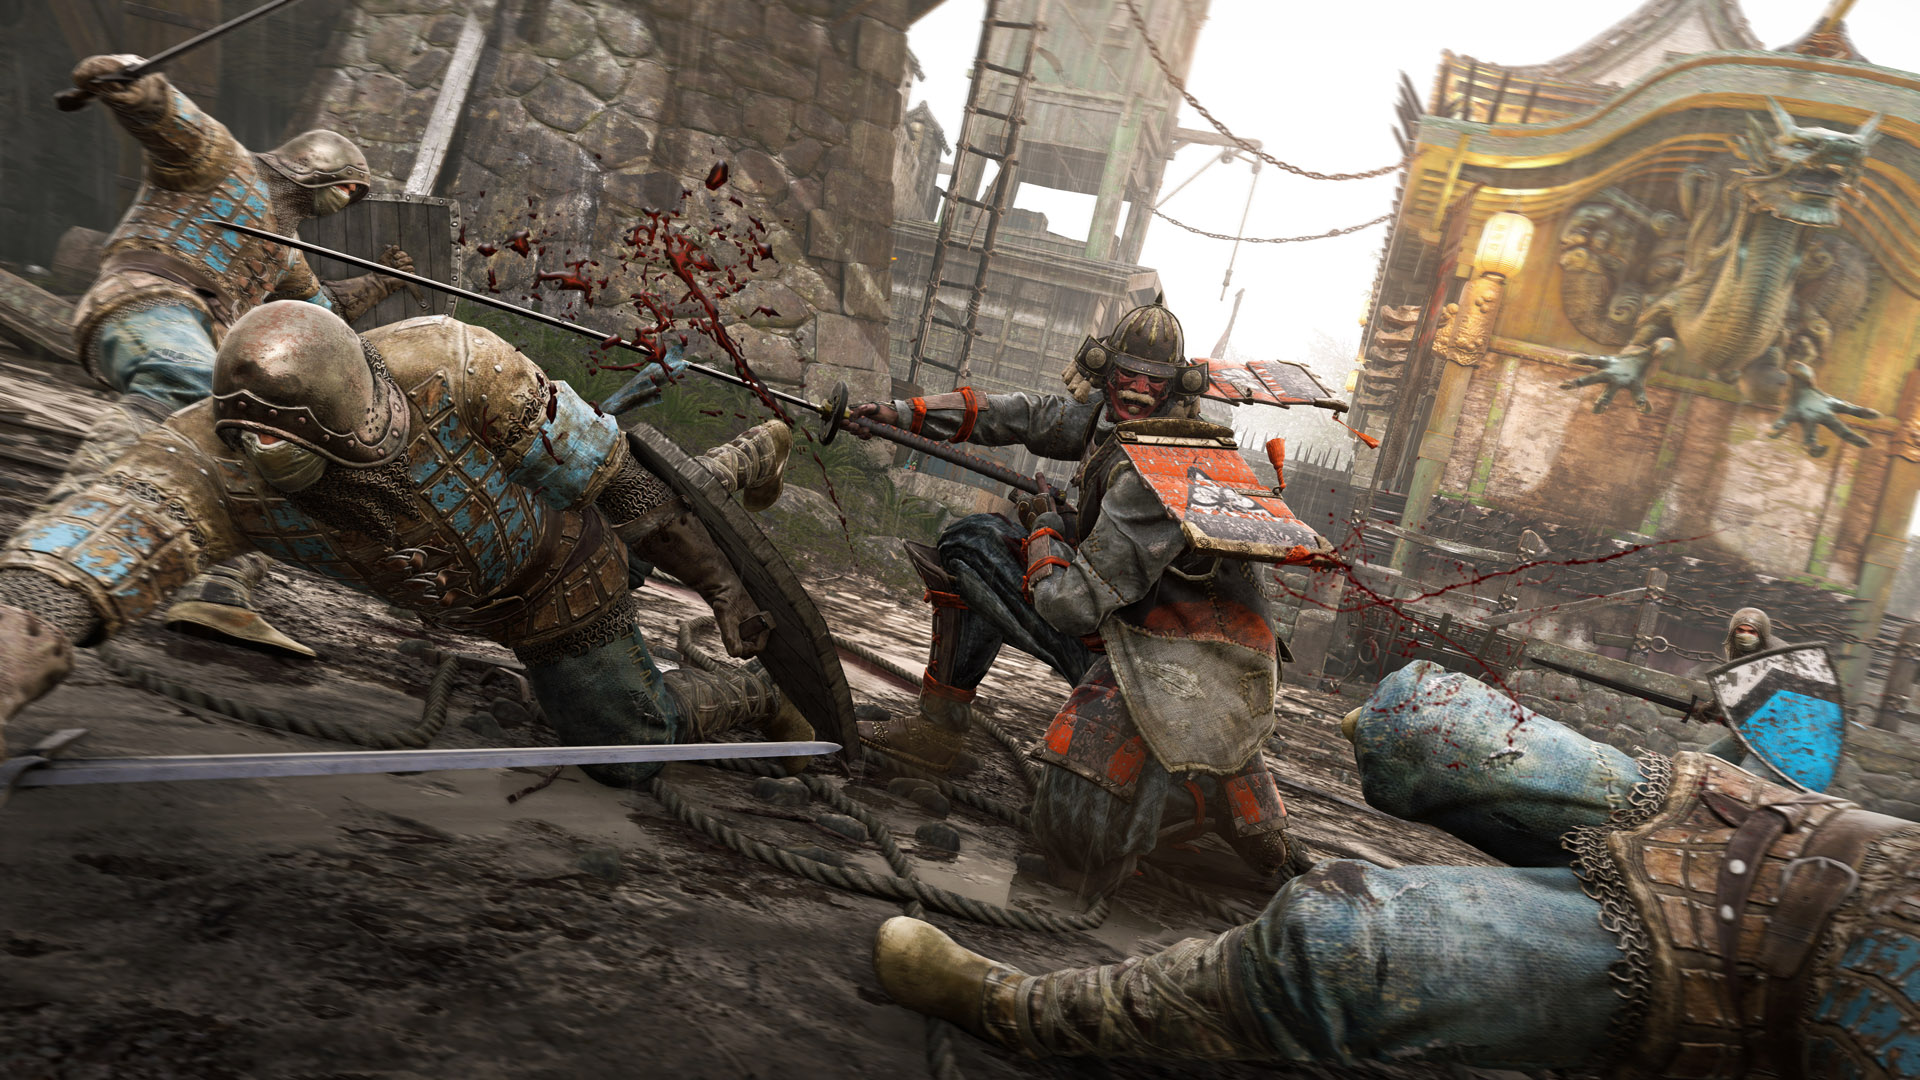 The best Faction in For Honor at this present moment would have to be the Samurai. Featuring long-range bleeders, fast attacks, and powerful Vanguard-types, the Samurai are an unstoppable force on the battlefield.